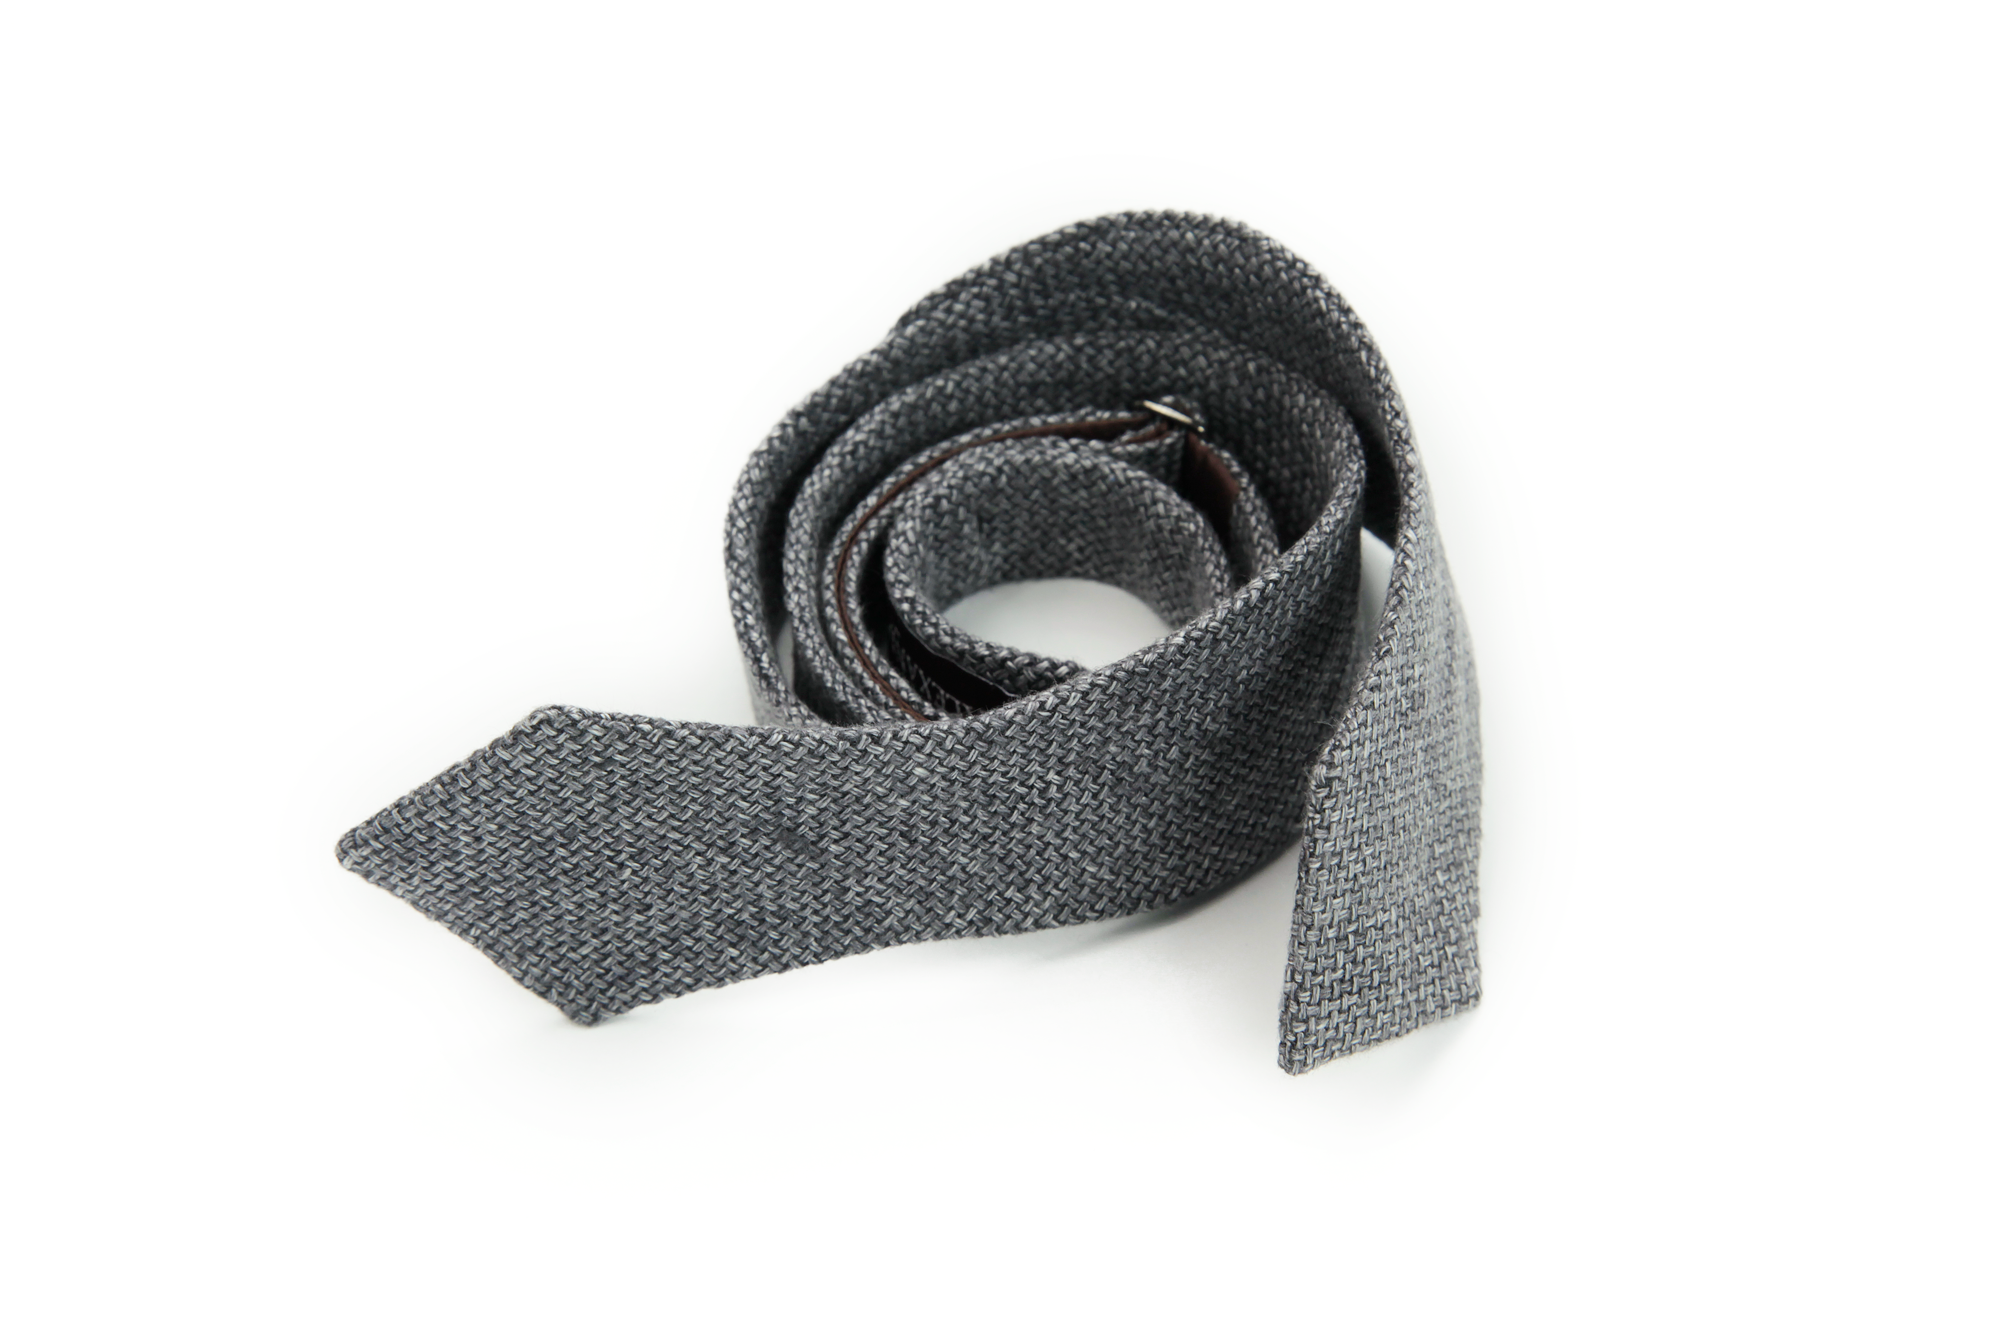 The Basketweave Bow Tie